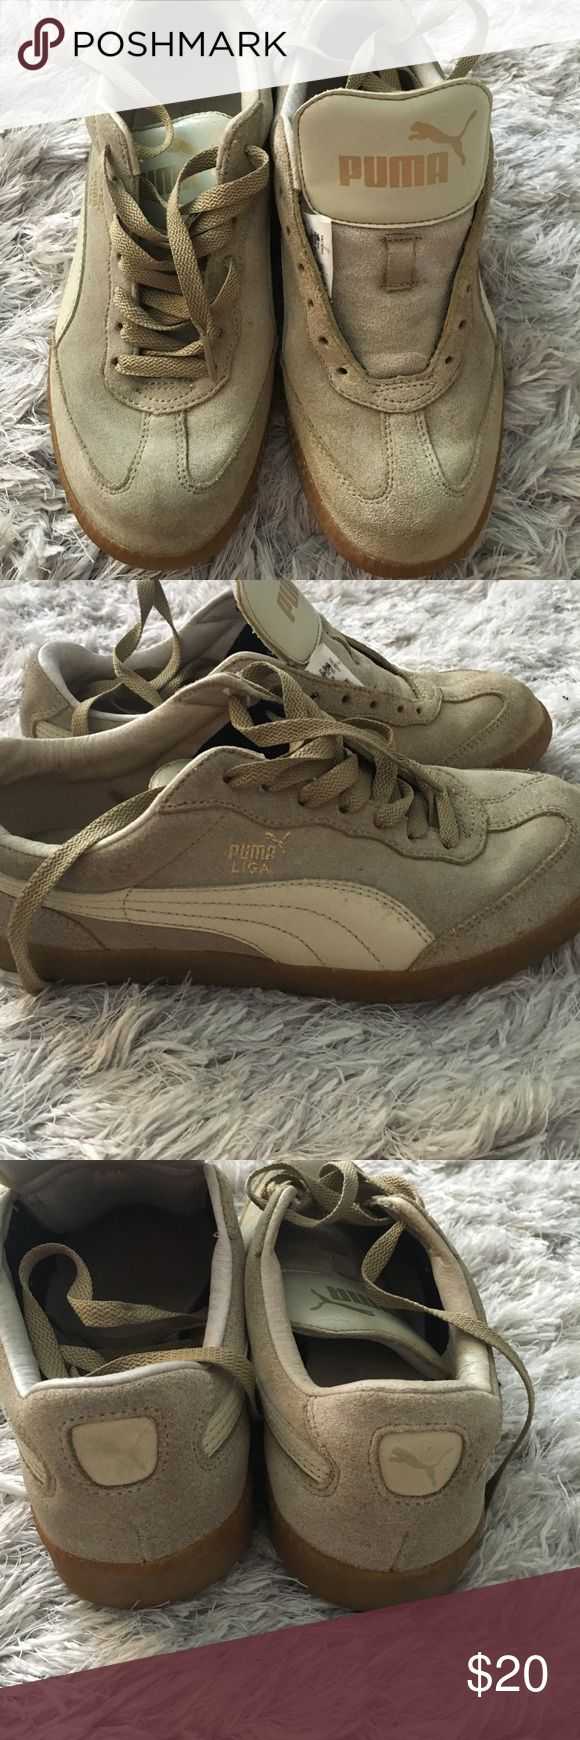 Puma liga shoes Still in good condition had good use but in still really good condition no rips. Size 7 in men! It's a women 9 but fits an 8-8.5 better. Has a little crack on the tongue but not to noticeable Puma Shoes Sneakers